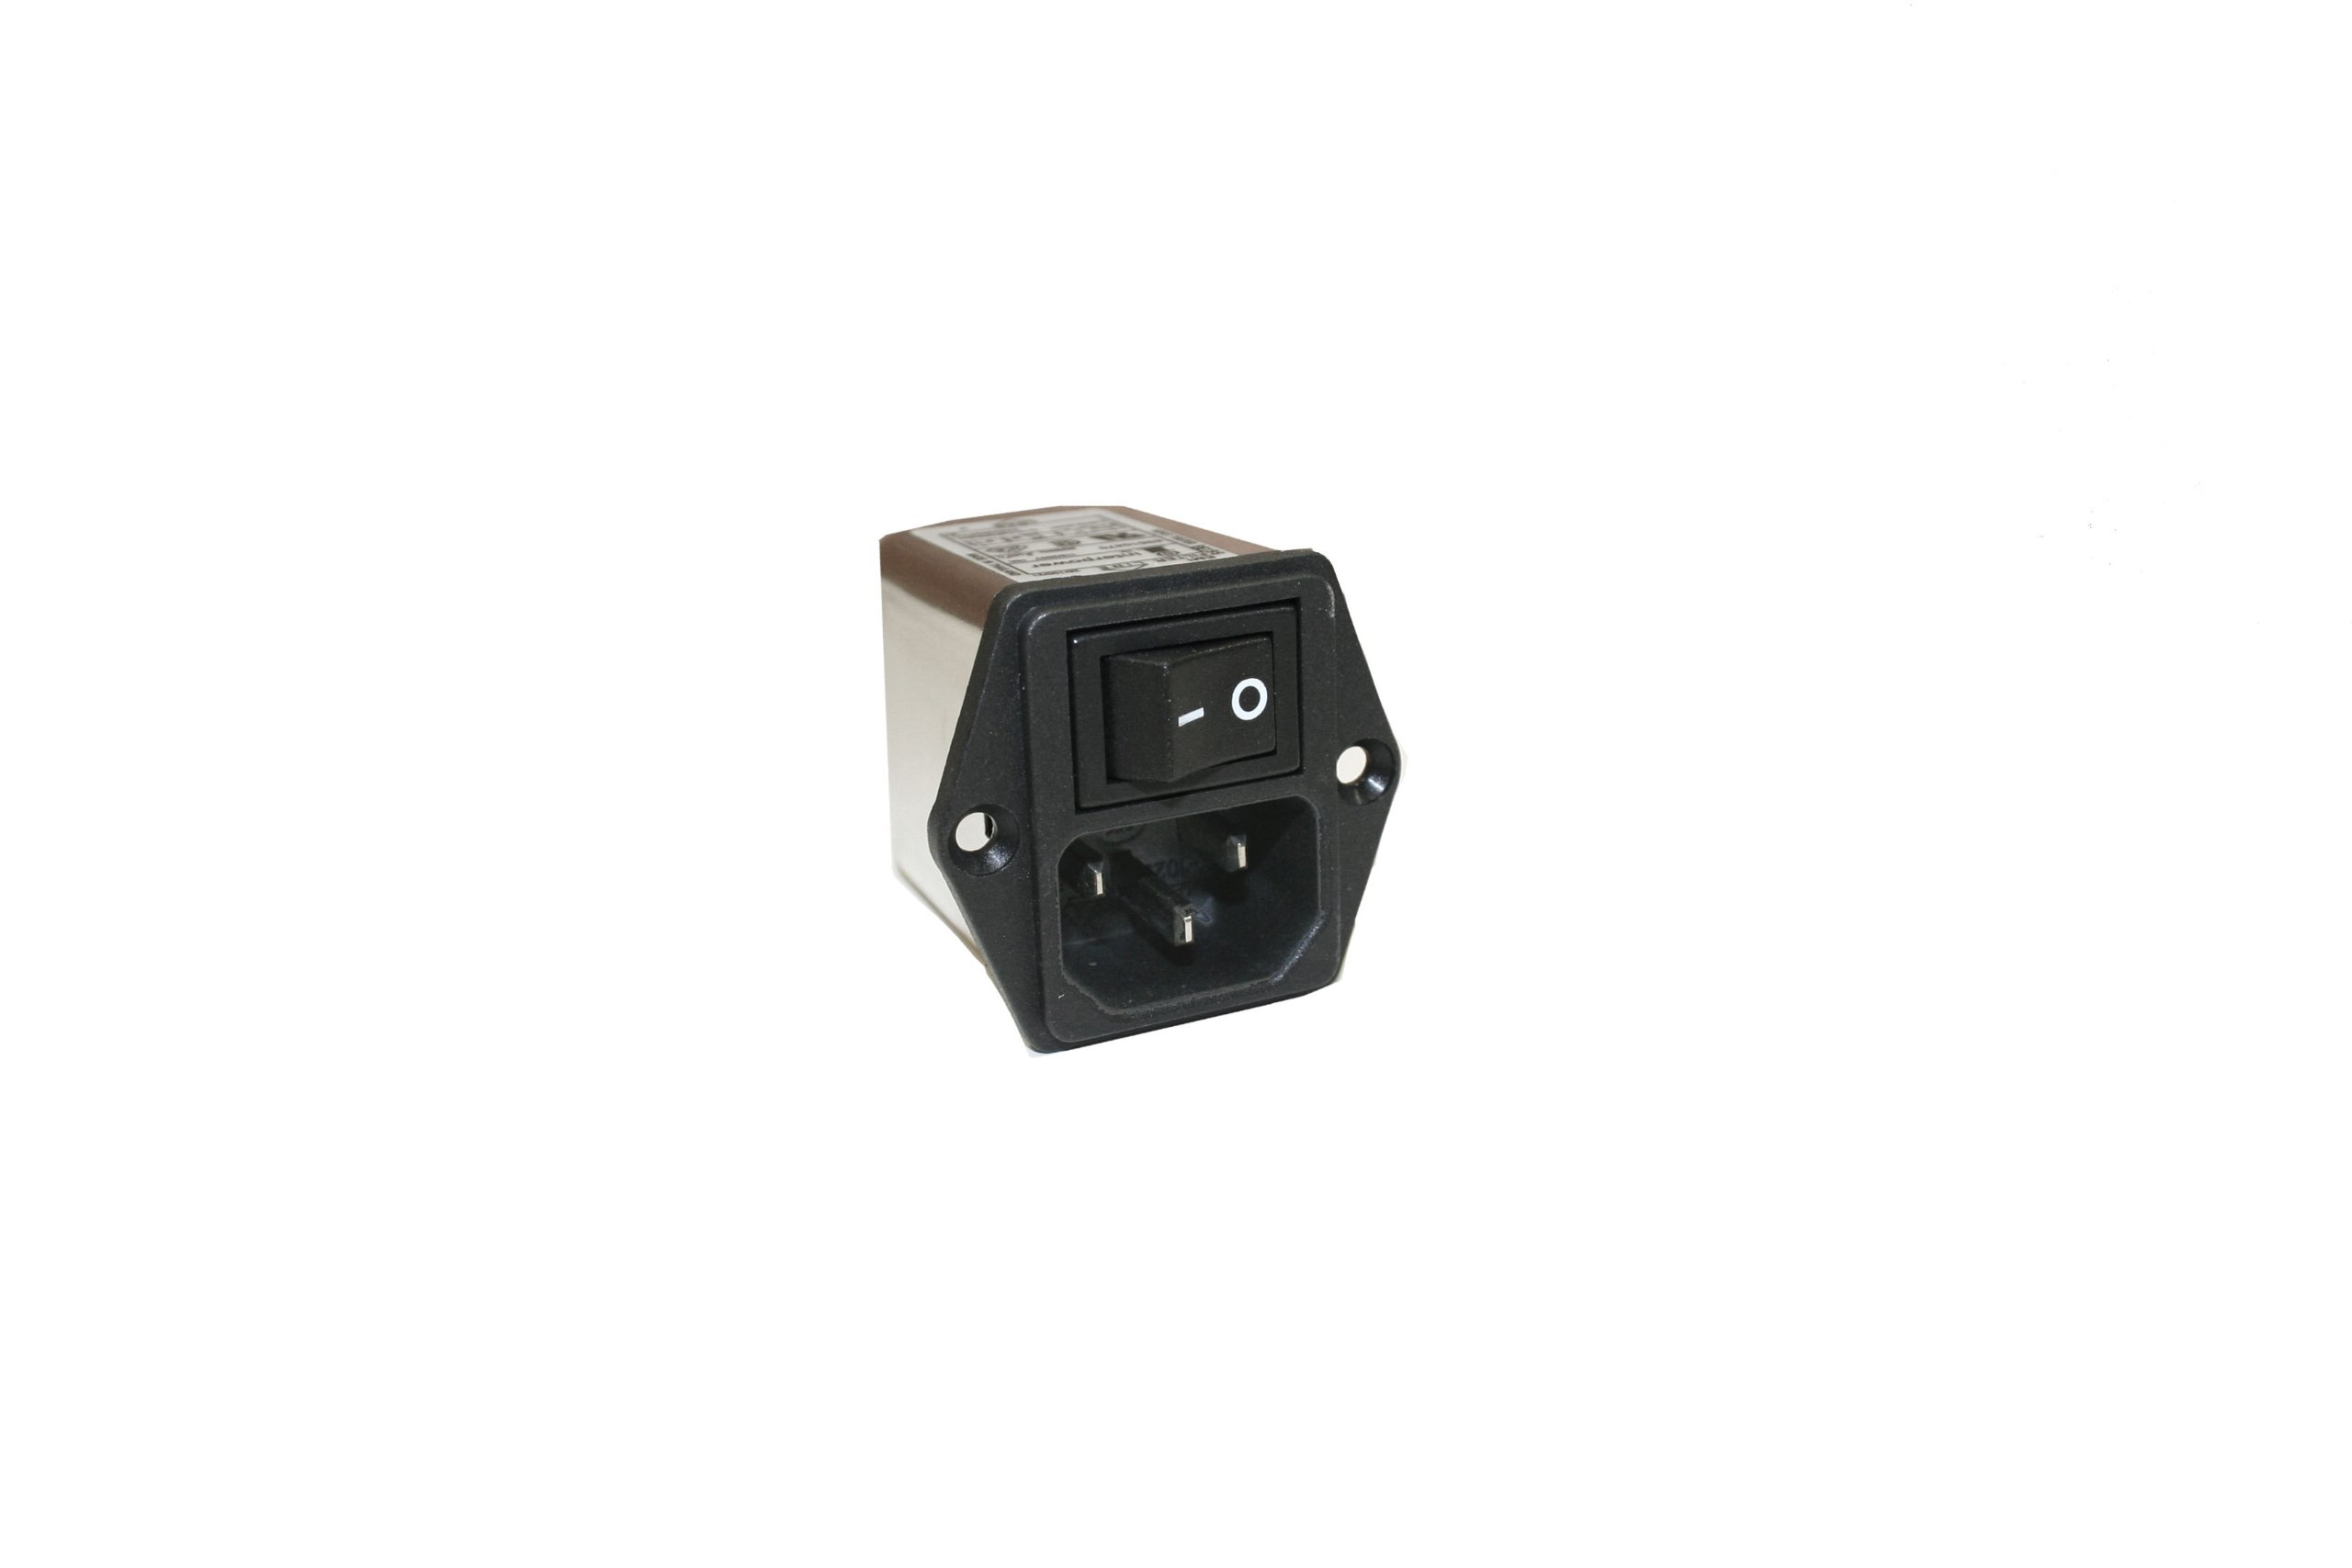 Interpower 83510470 Three Function Module, C14 Inlet, Switch, Filter, 10A Current Rating, 115/250VAC Voltage Rating by Interpower